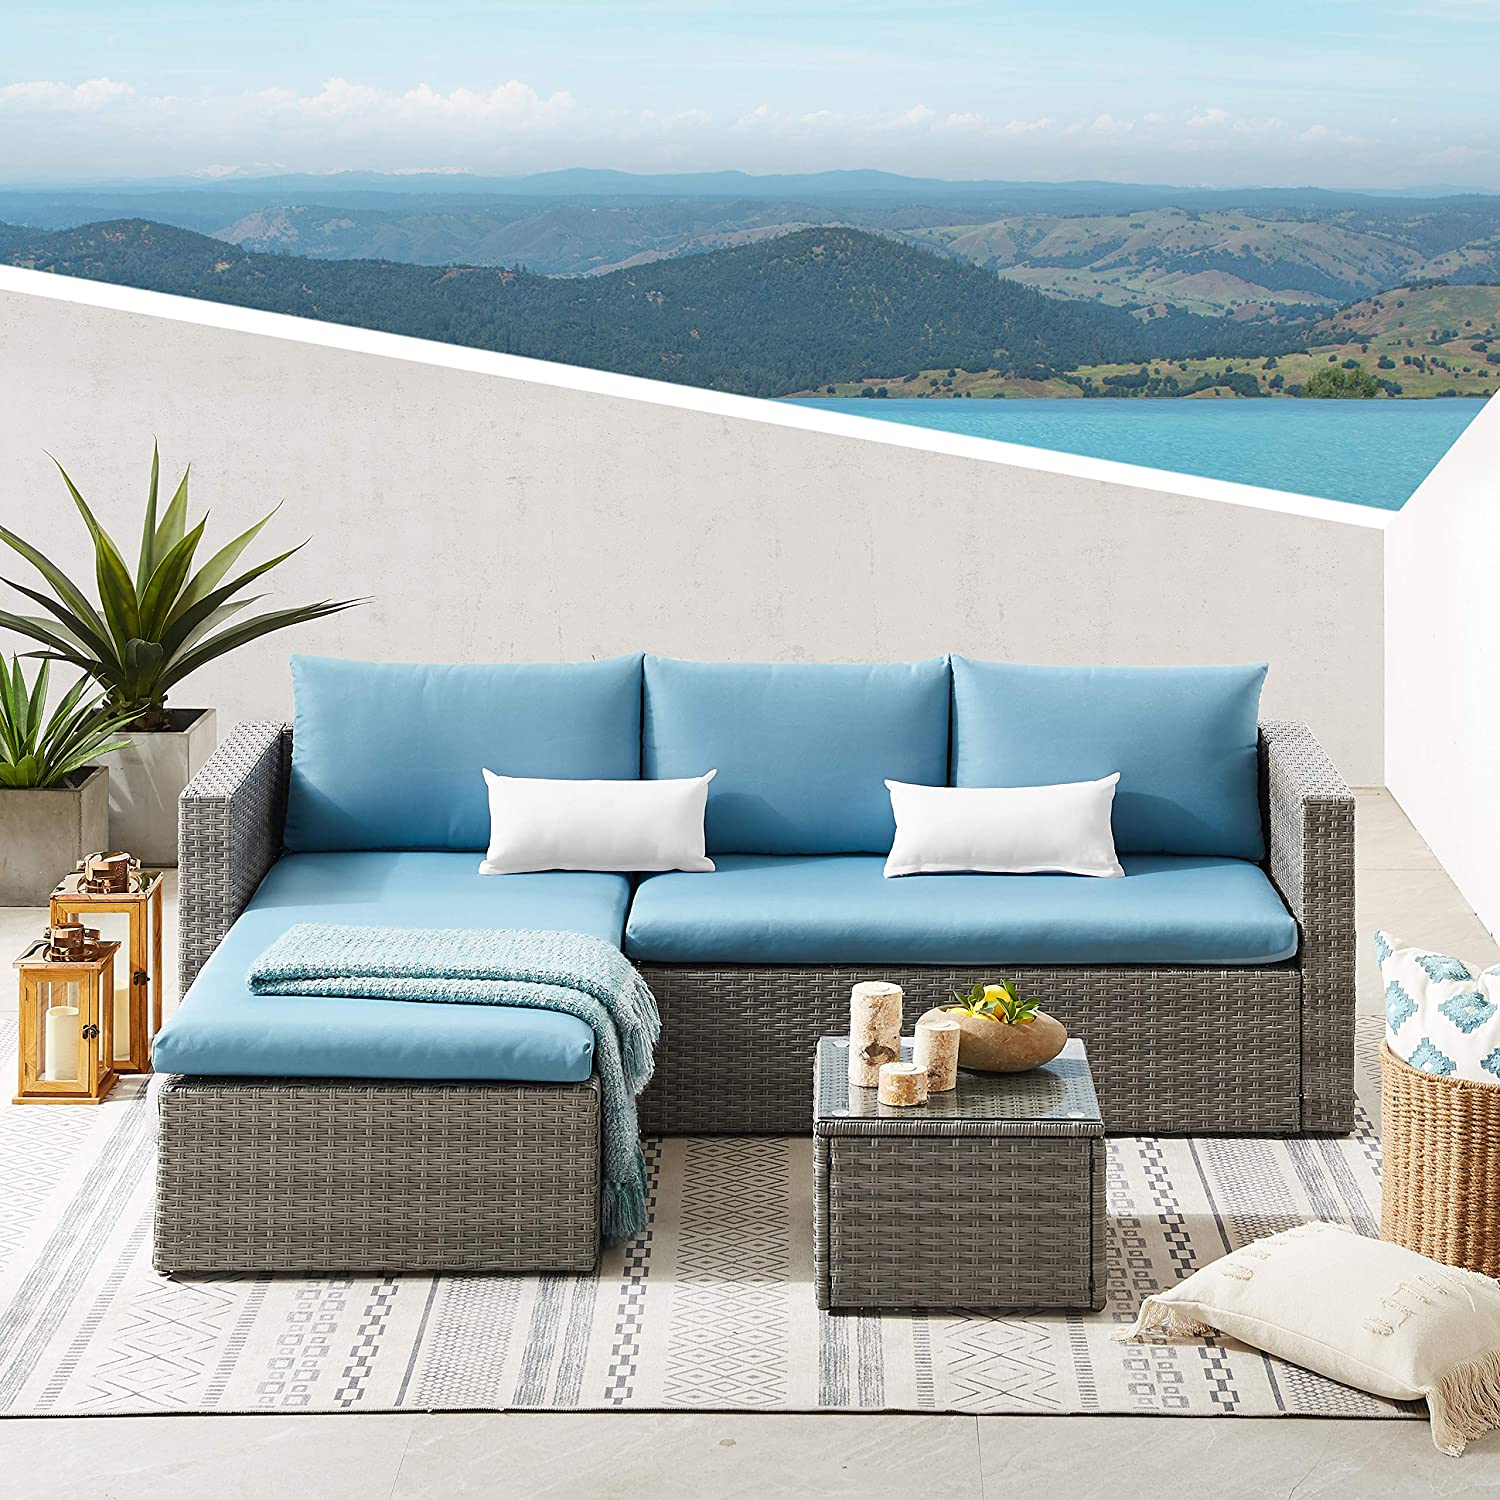 Volans 3 Pieces Patio Furniture All Section Outdoor Weather Washington Mall Set Max 58% OFF